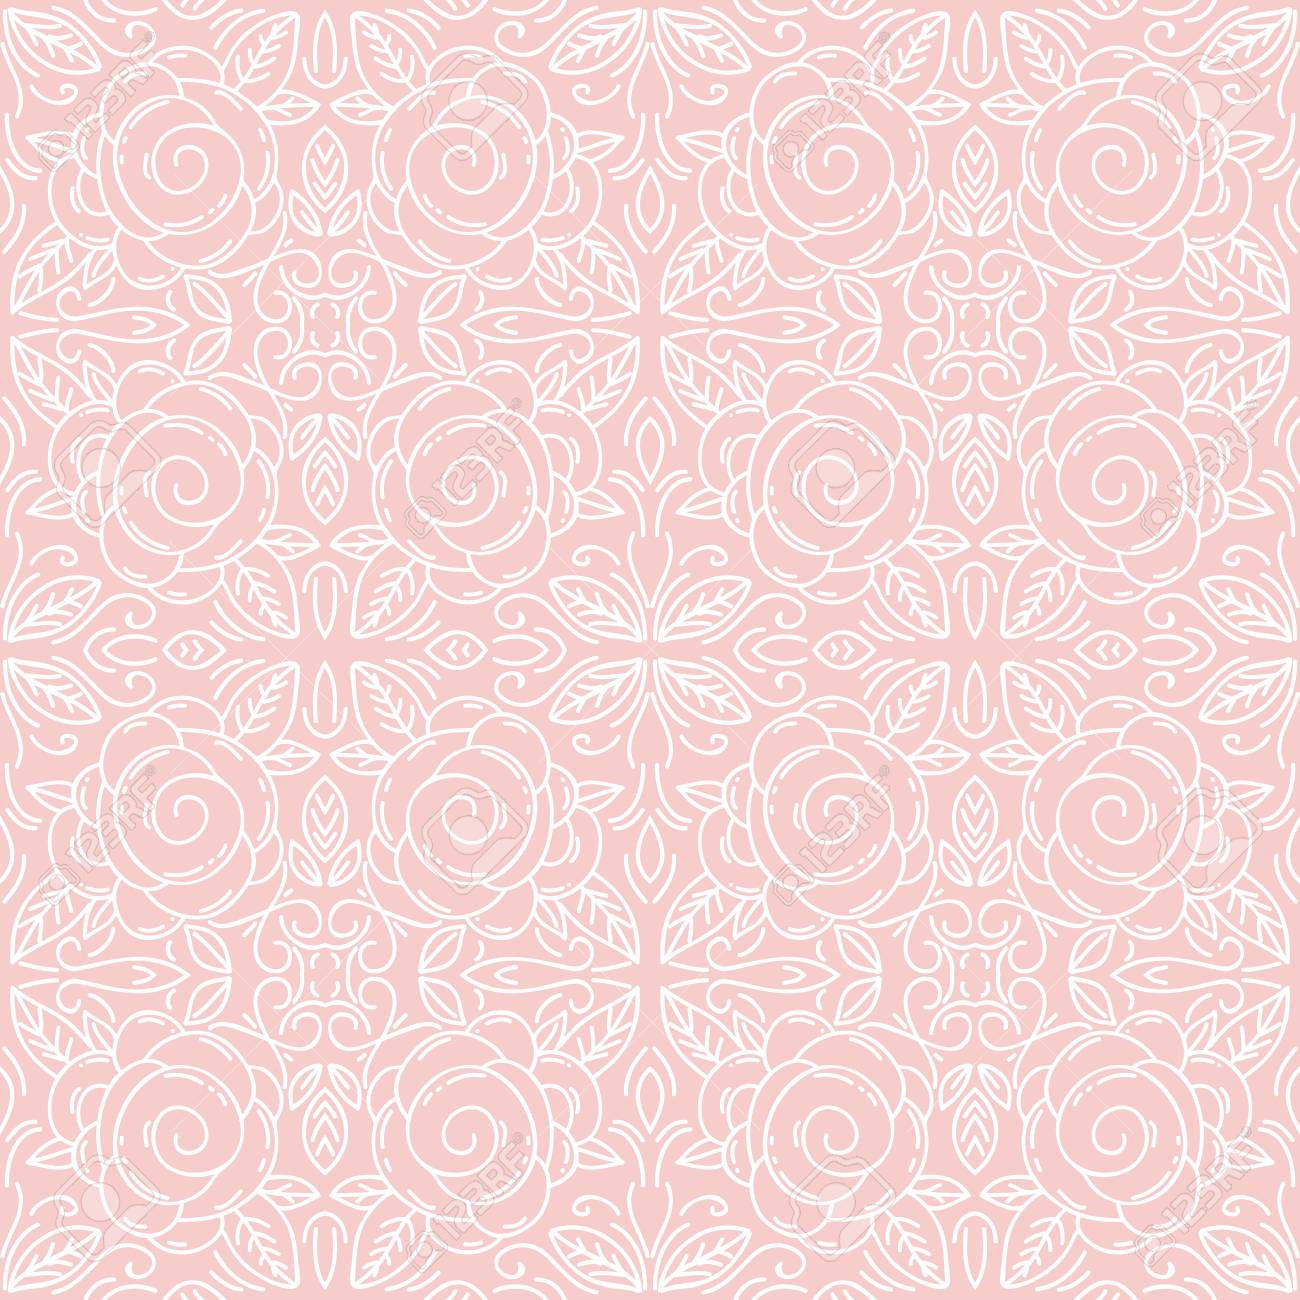 Pink Floral Seamless Patterns Ideal For Printing Onto Fabric